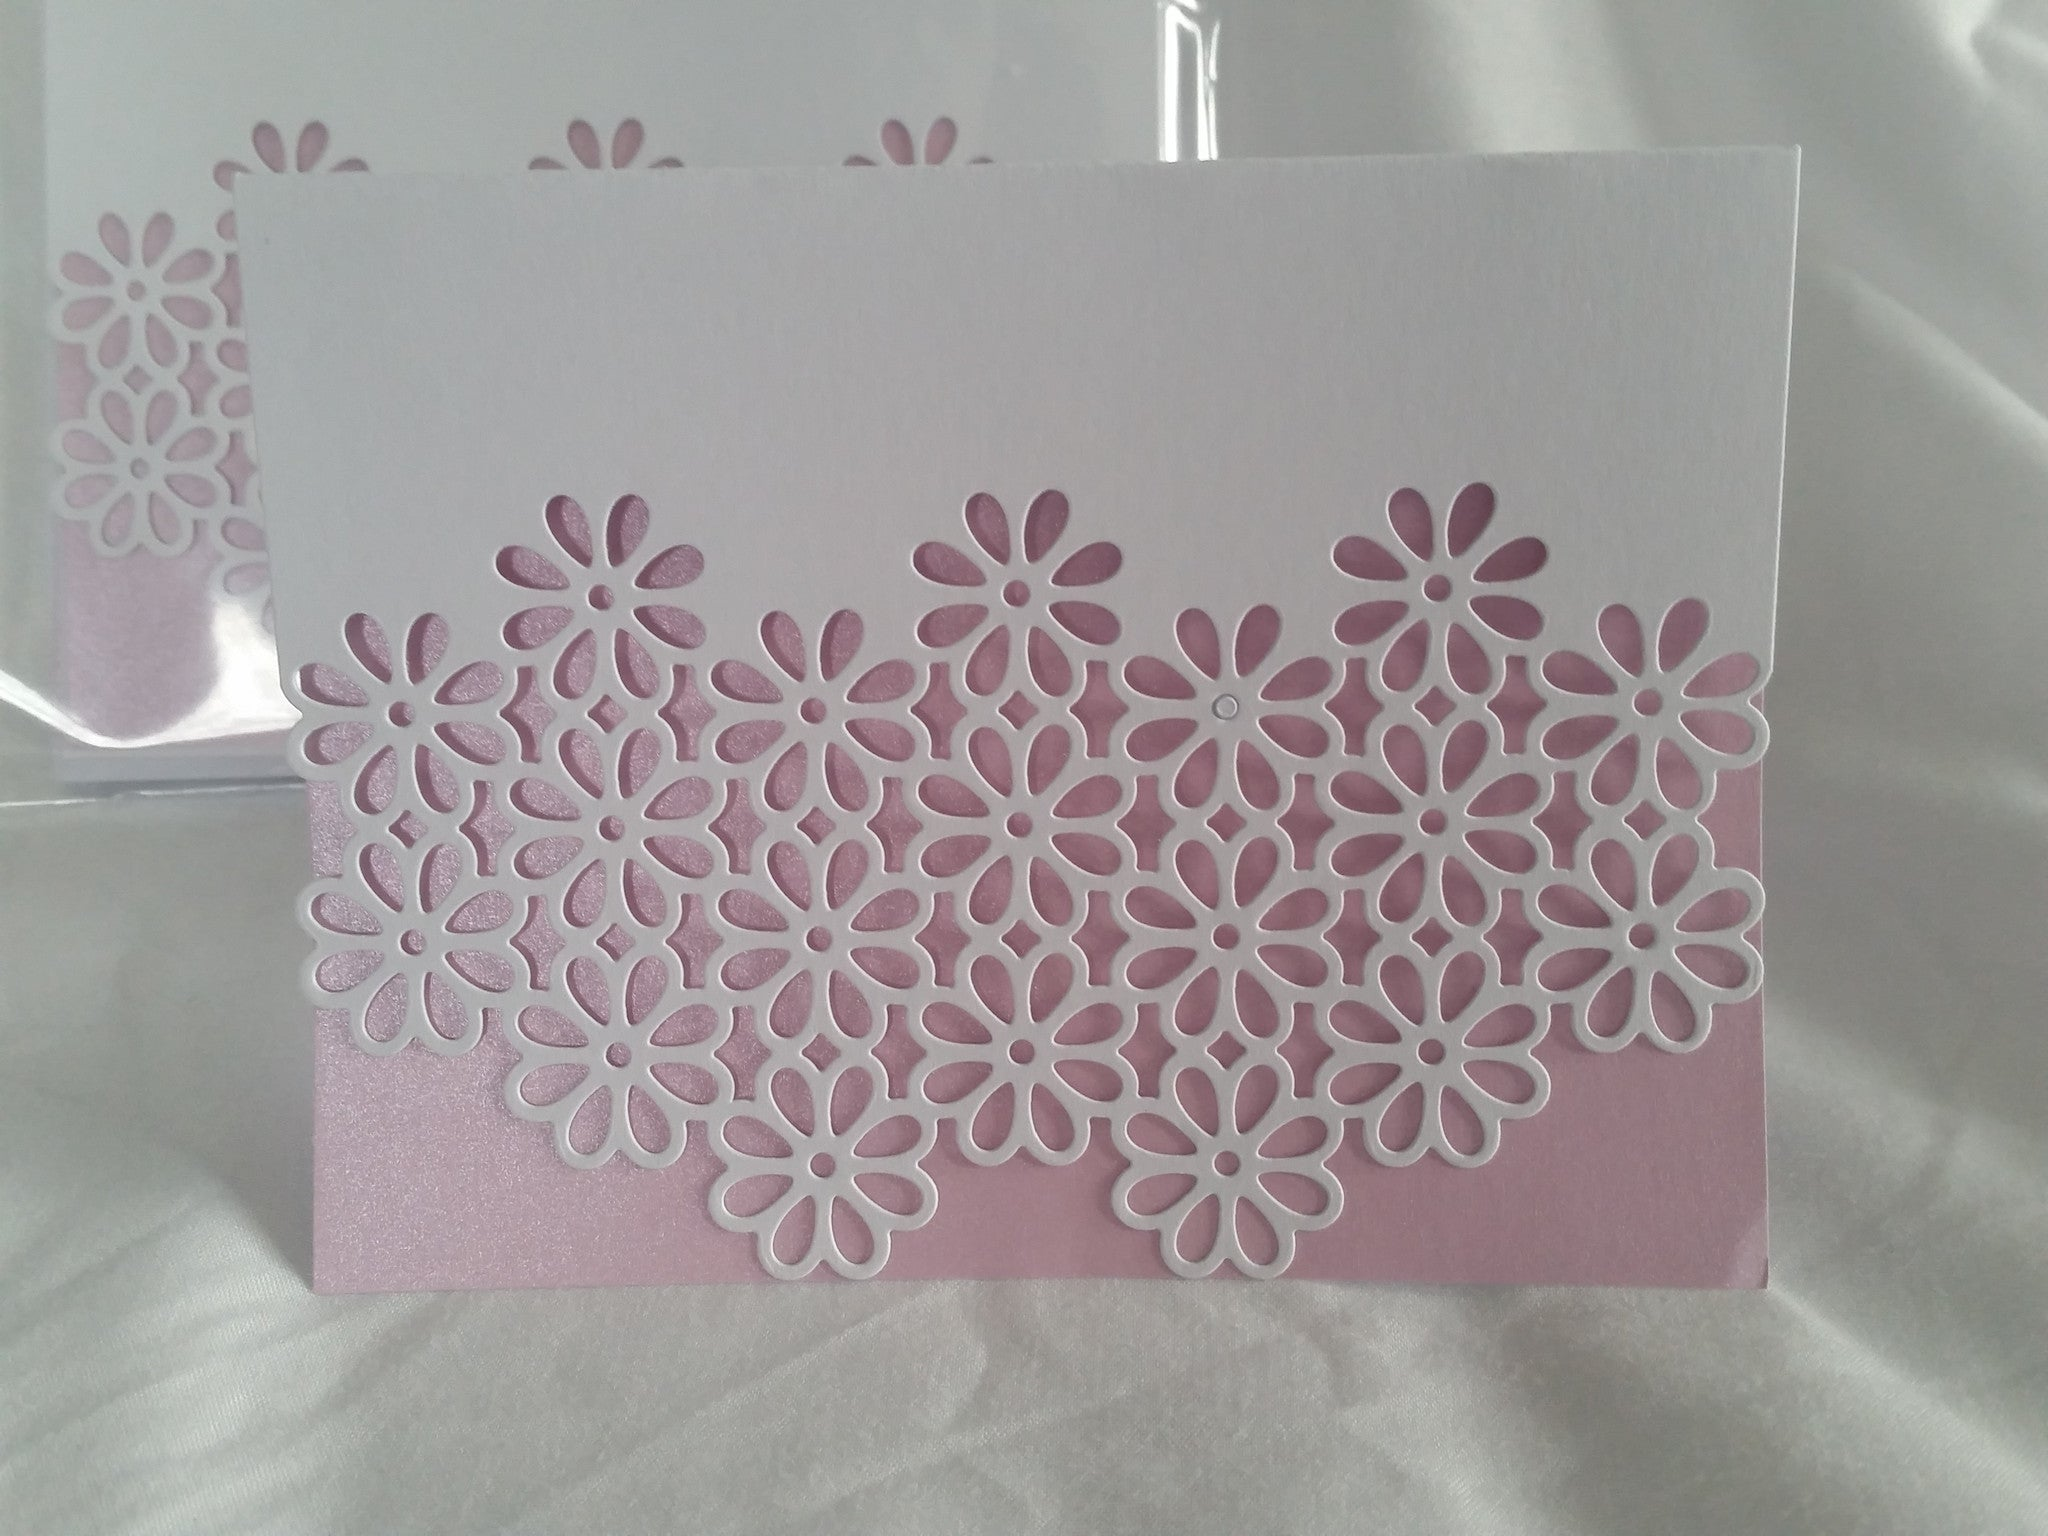 Die Cut Greeting Cards - 8 Cards Rose/Pink